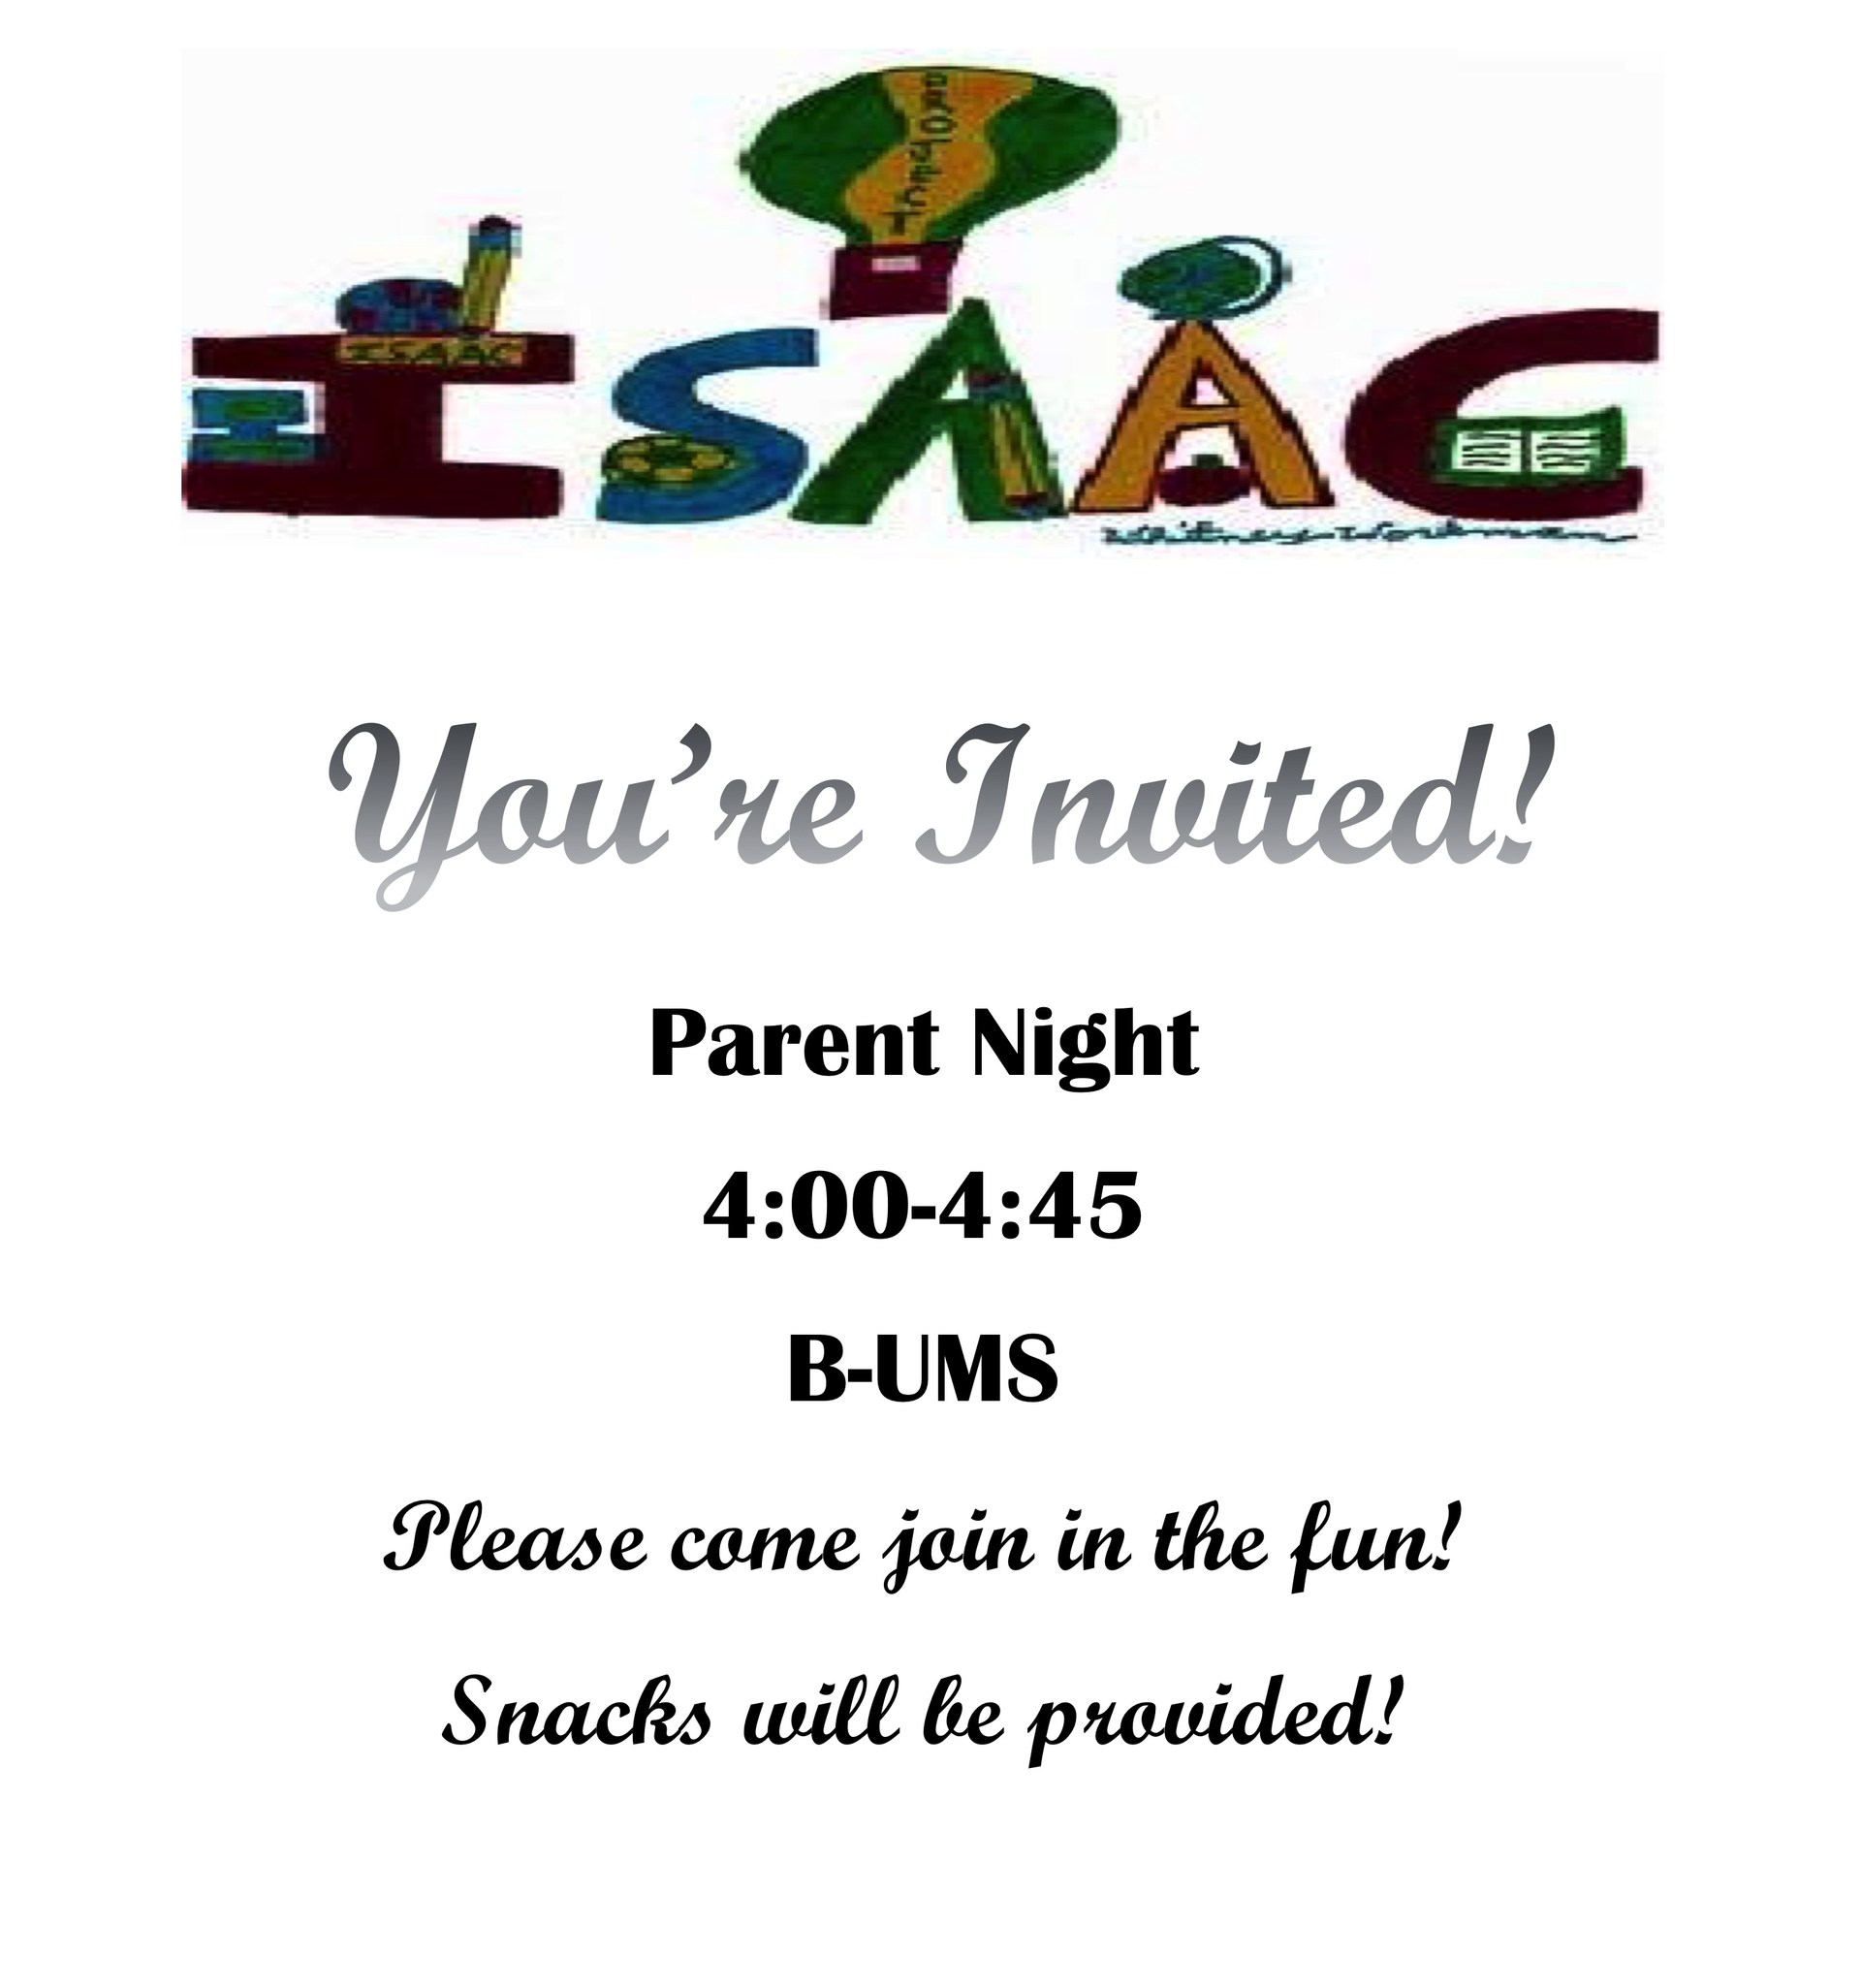 Parent Night - Thursday, April 26th from 4:00-4:45